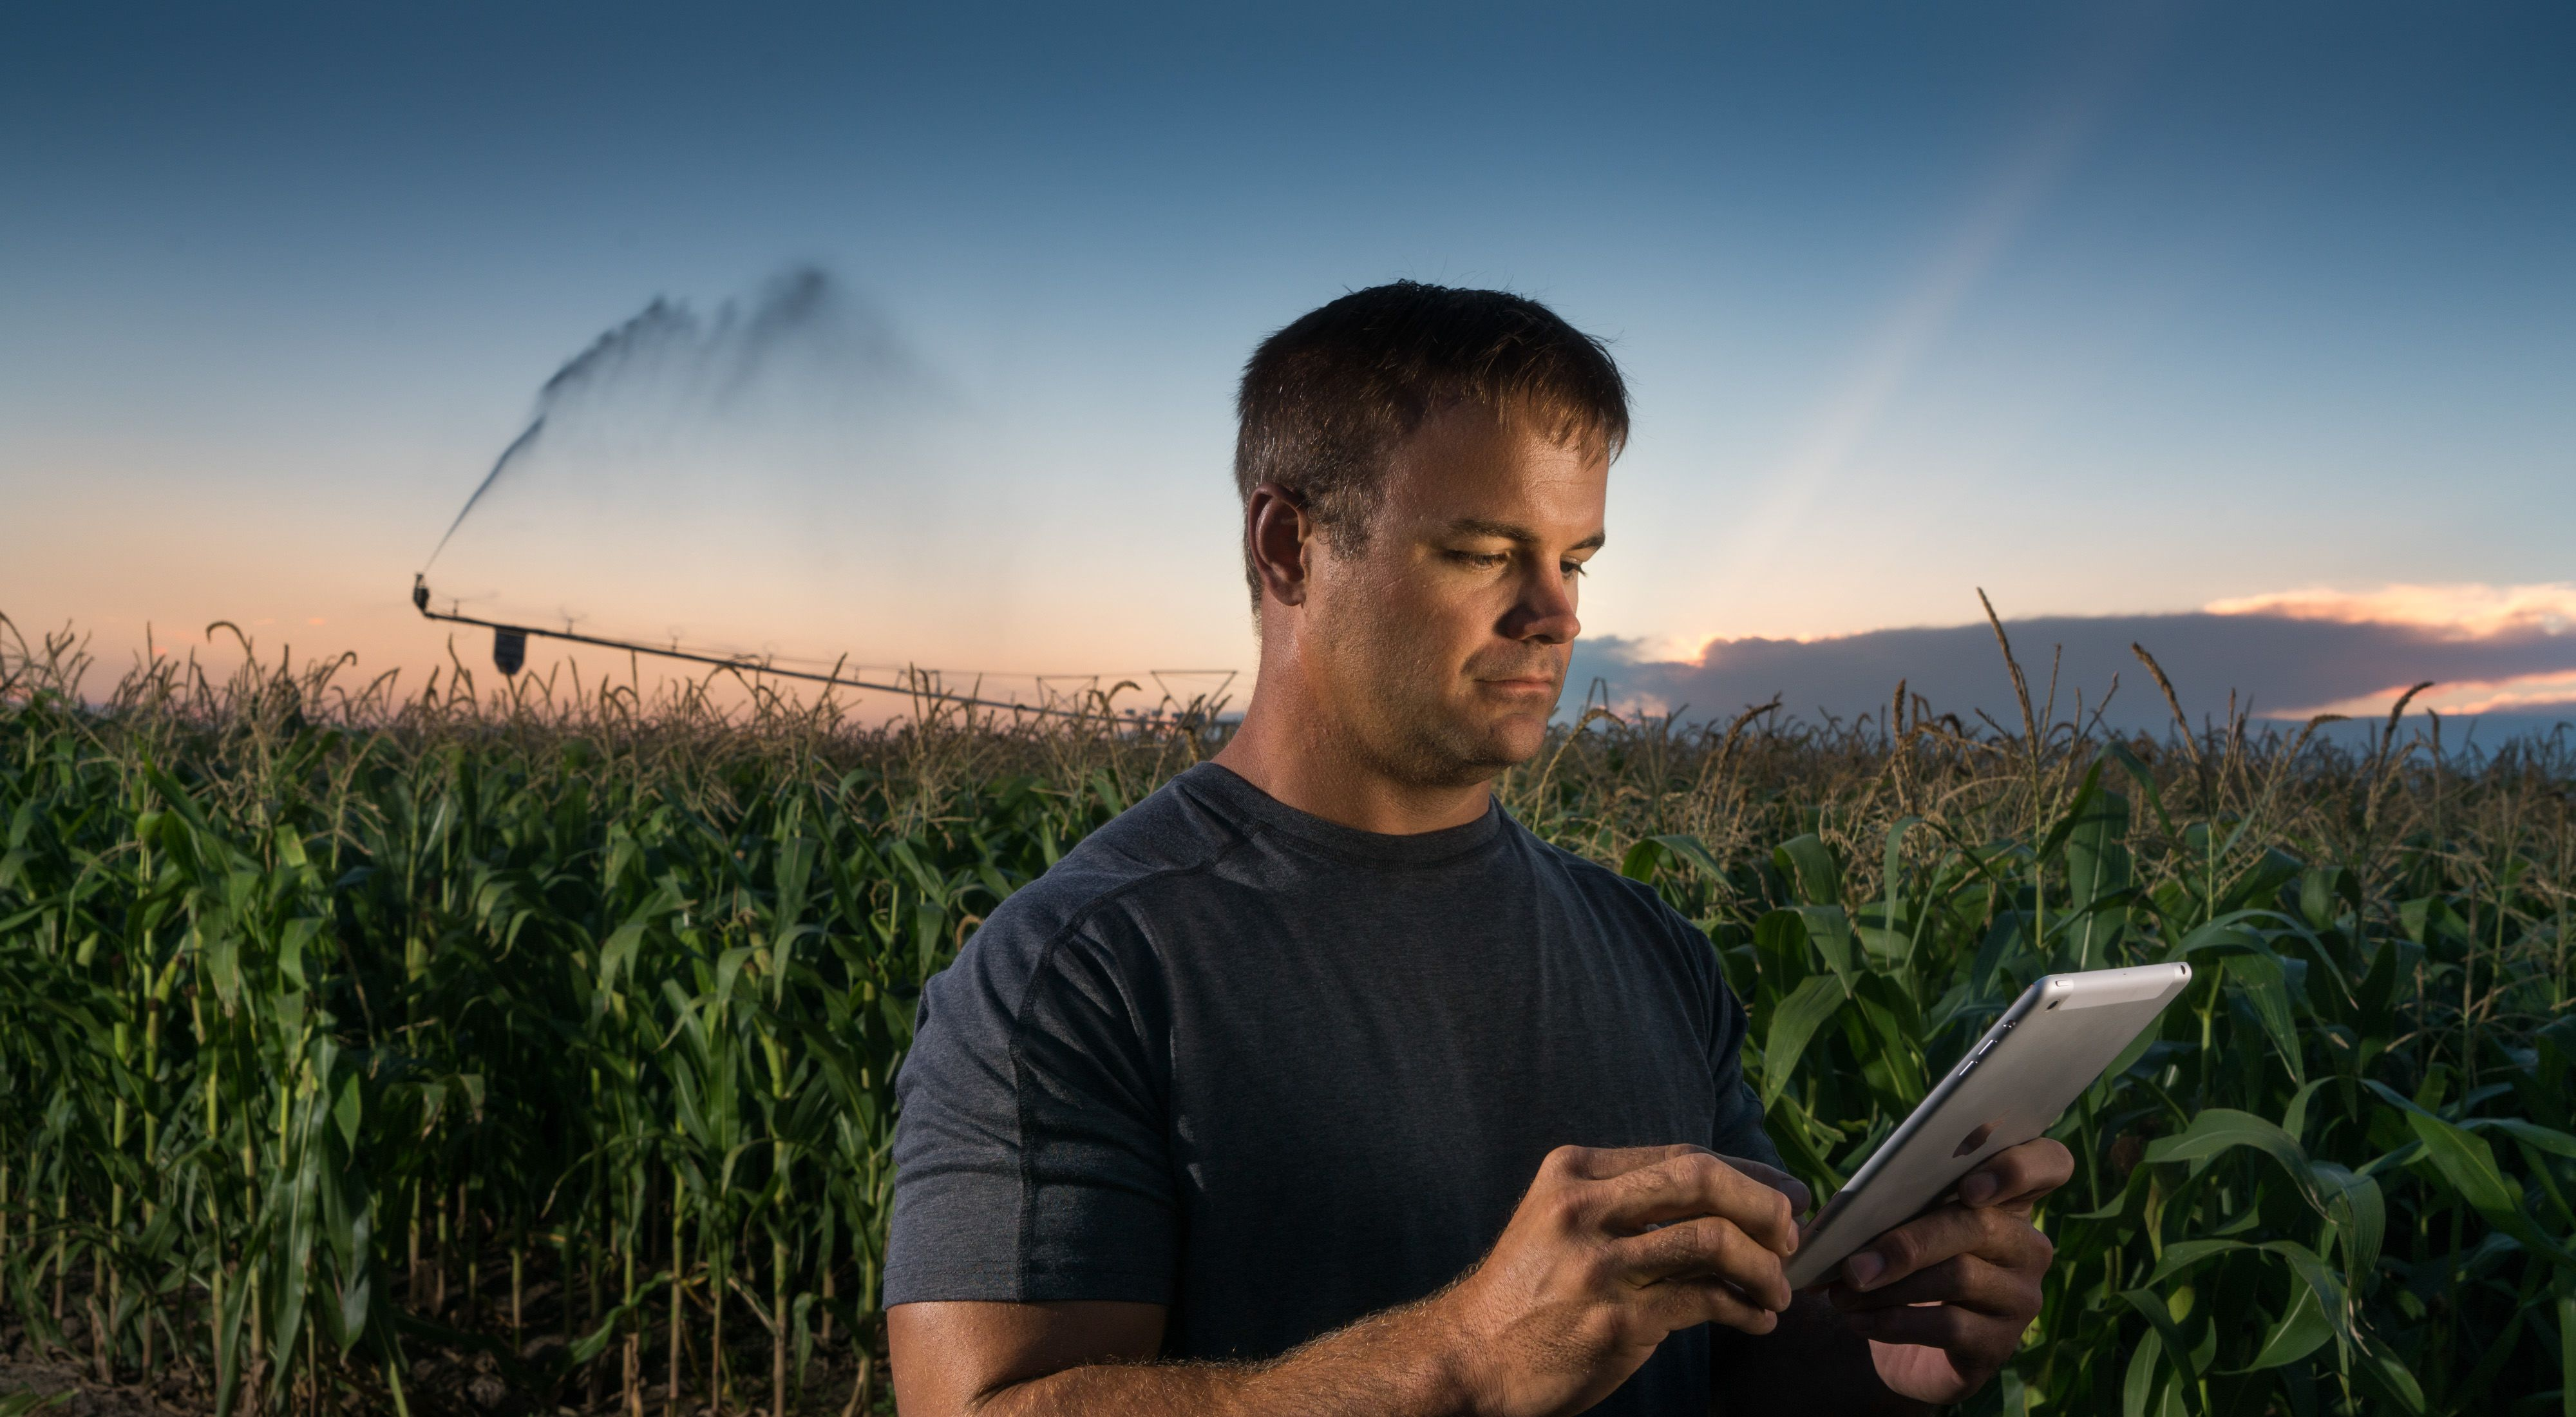 Nebraska Farmer Mike Svoboda stands in his field using a tablet to control the irrigation